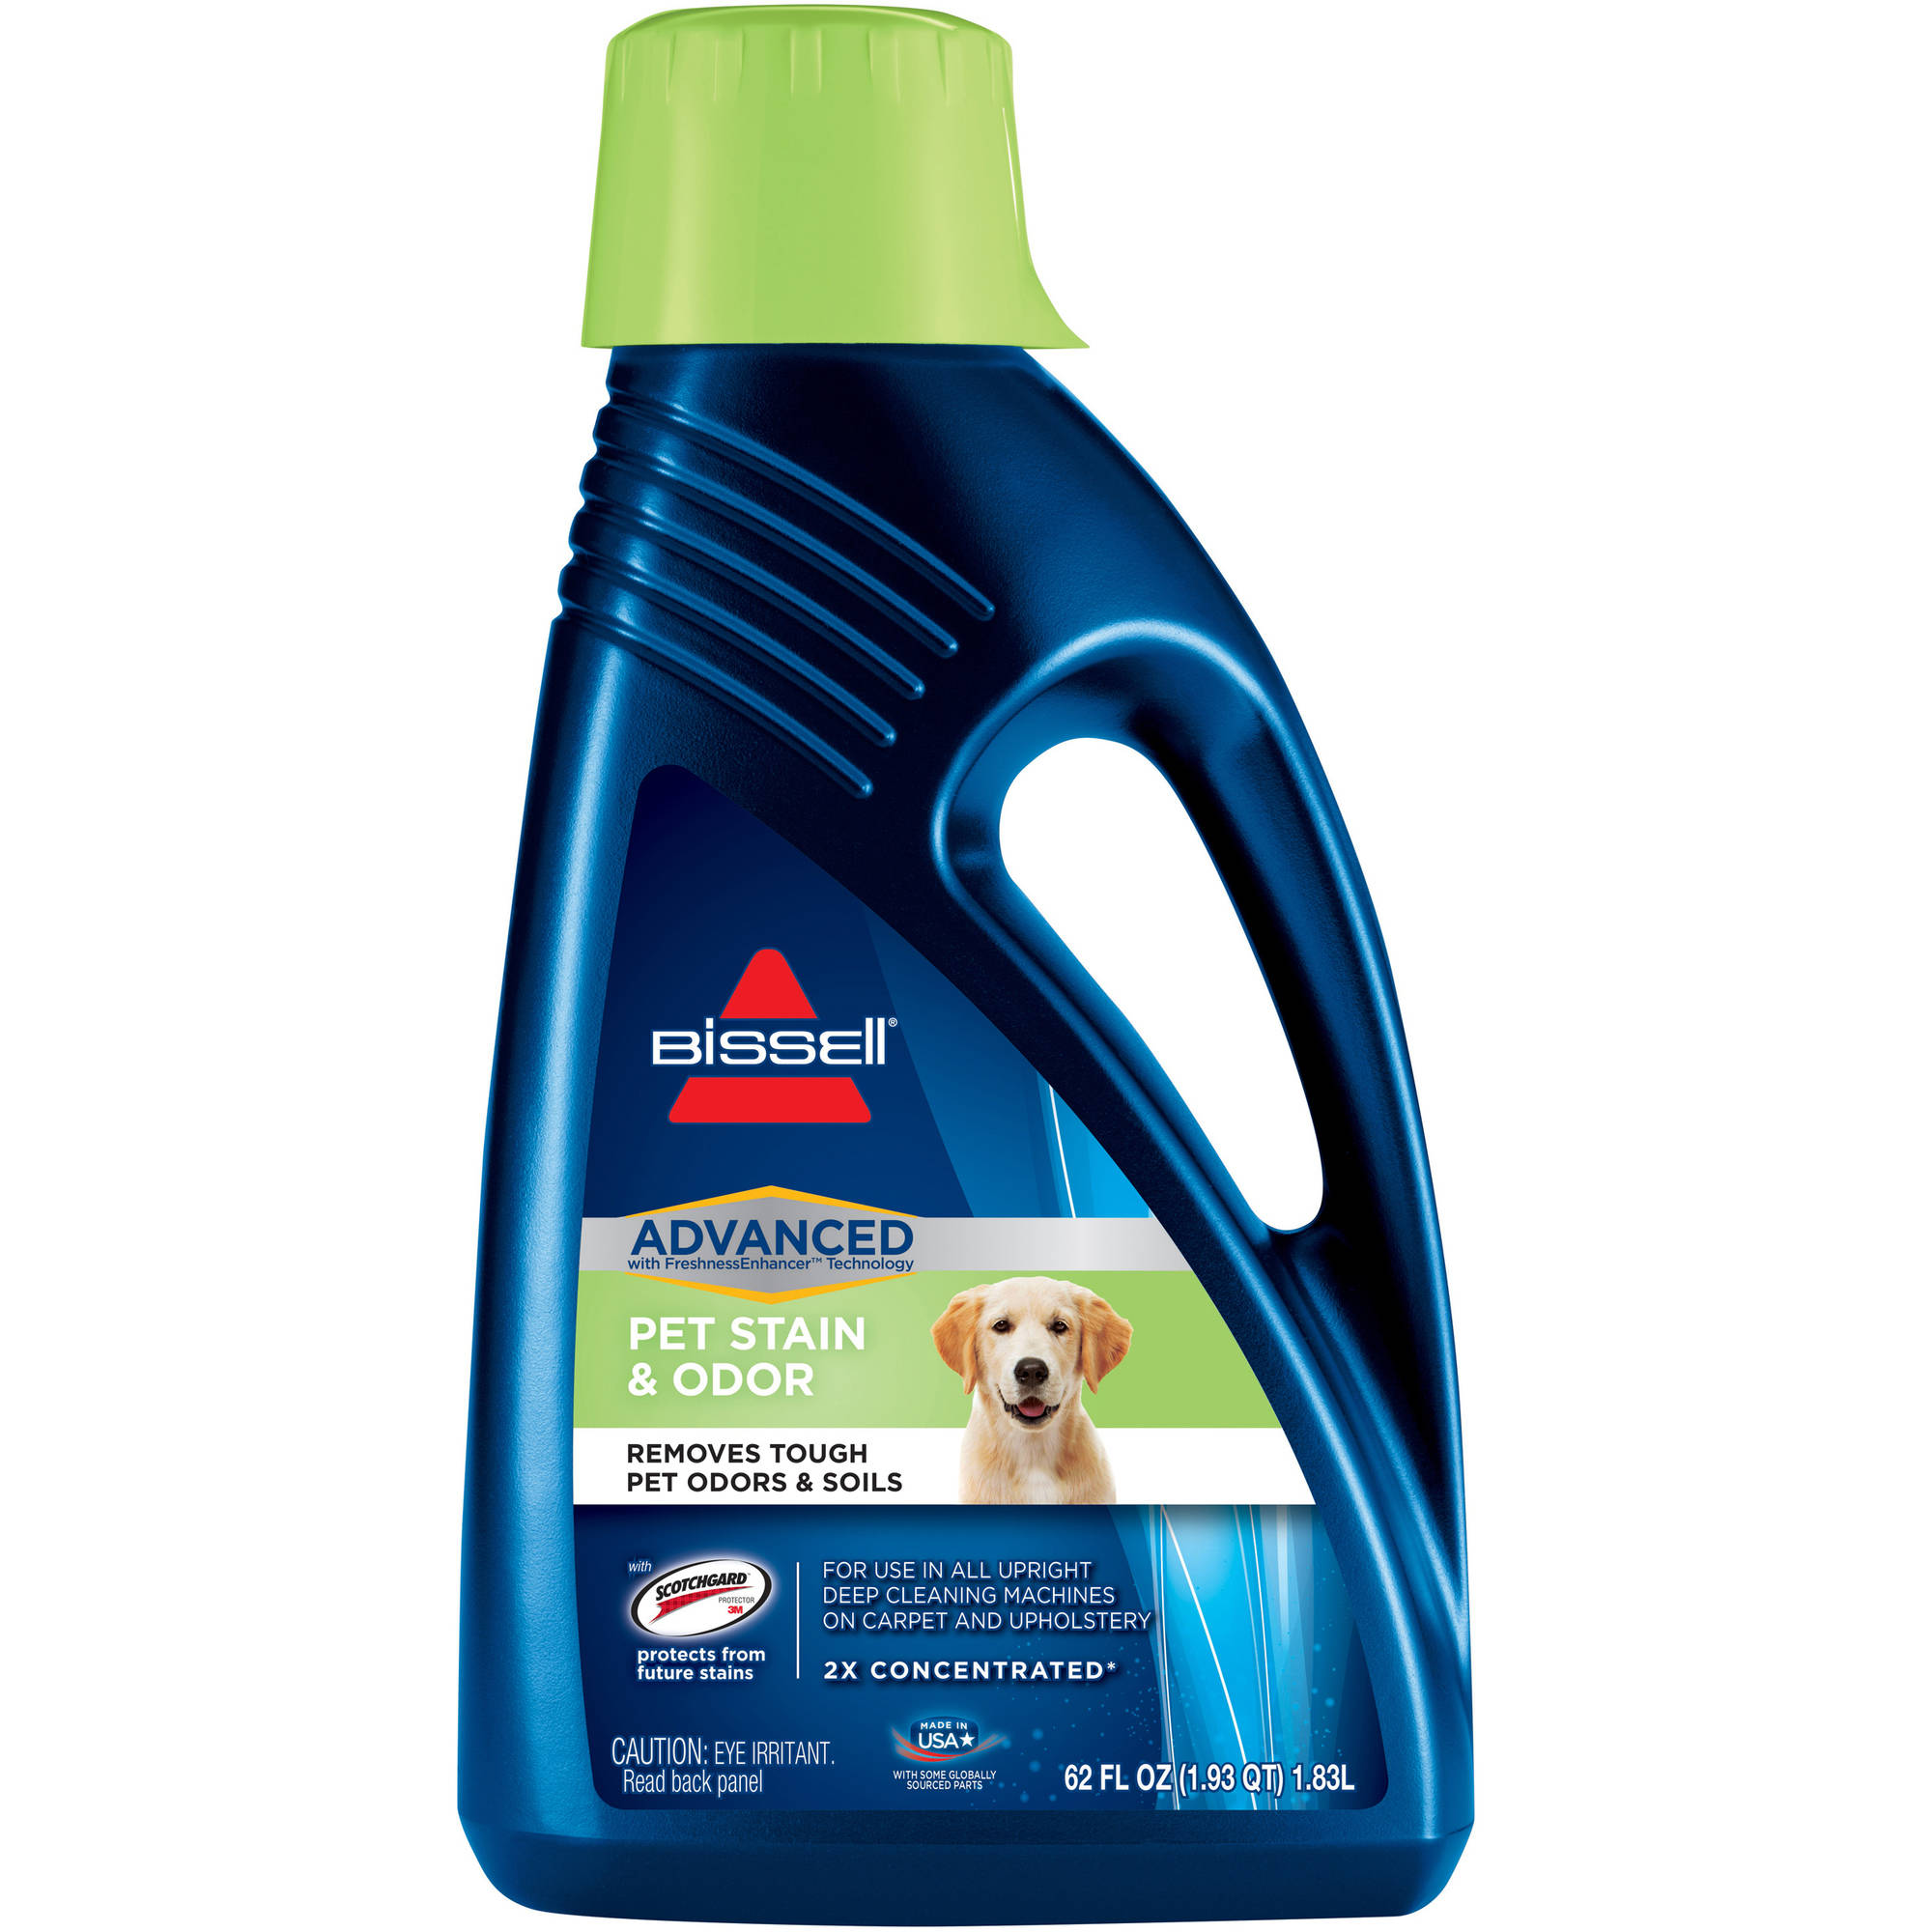 Bissell Pet Stain and Odor